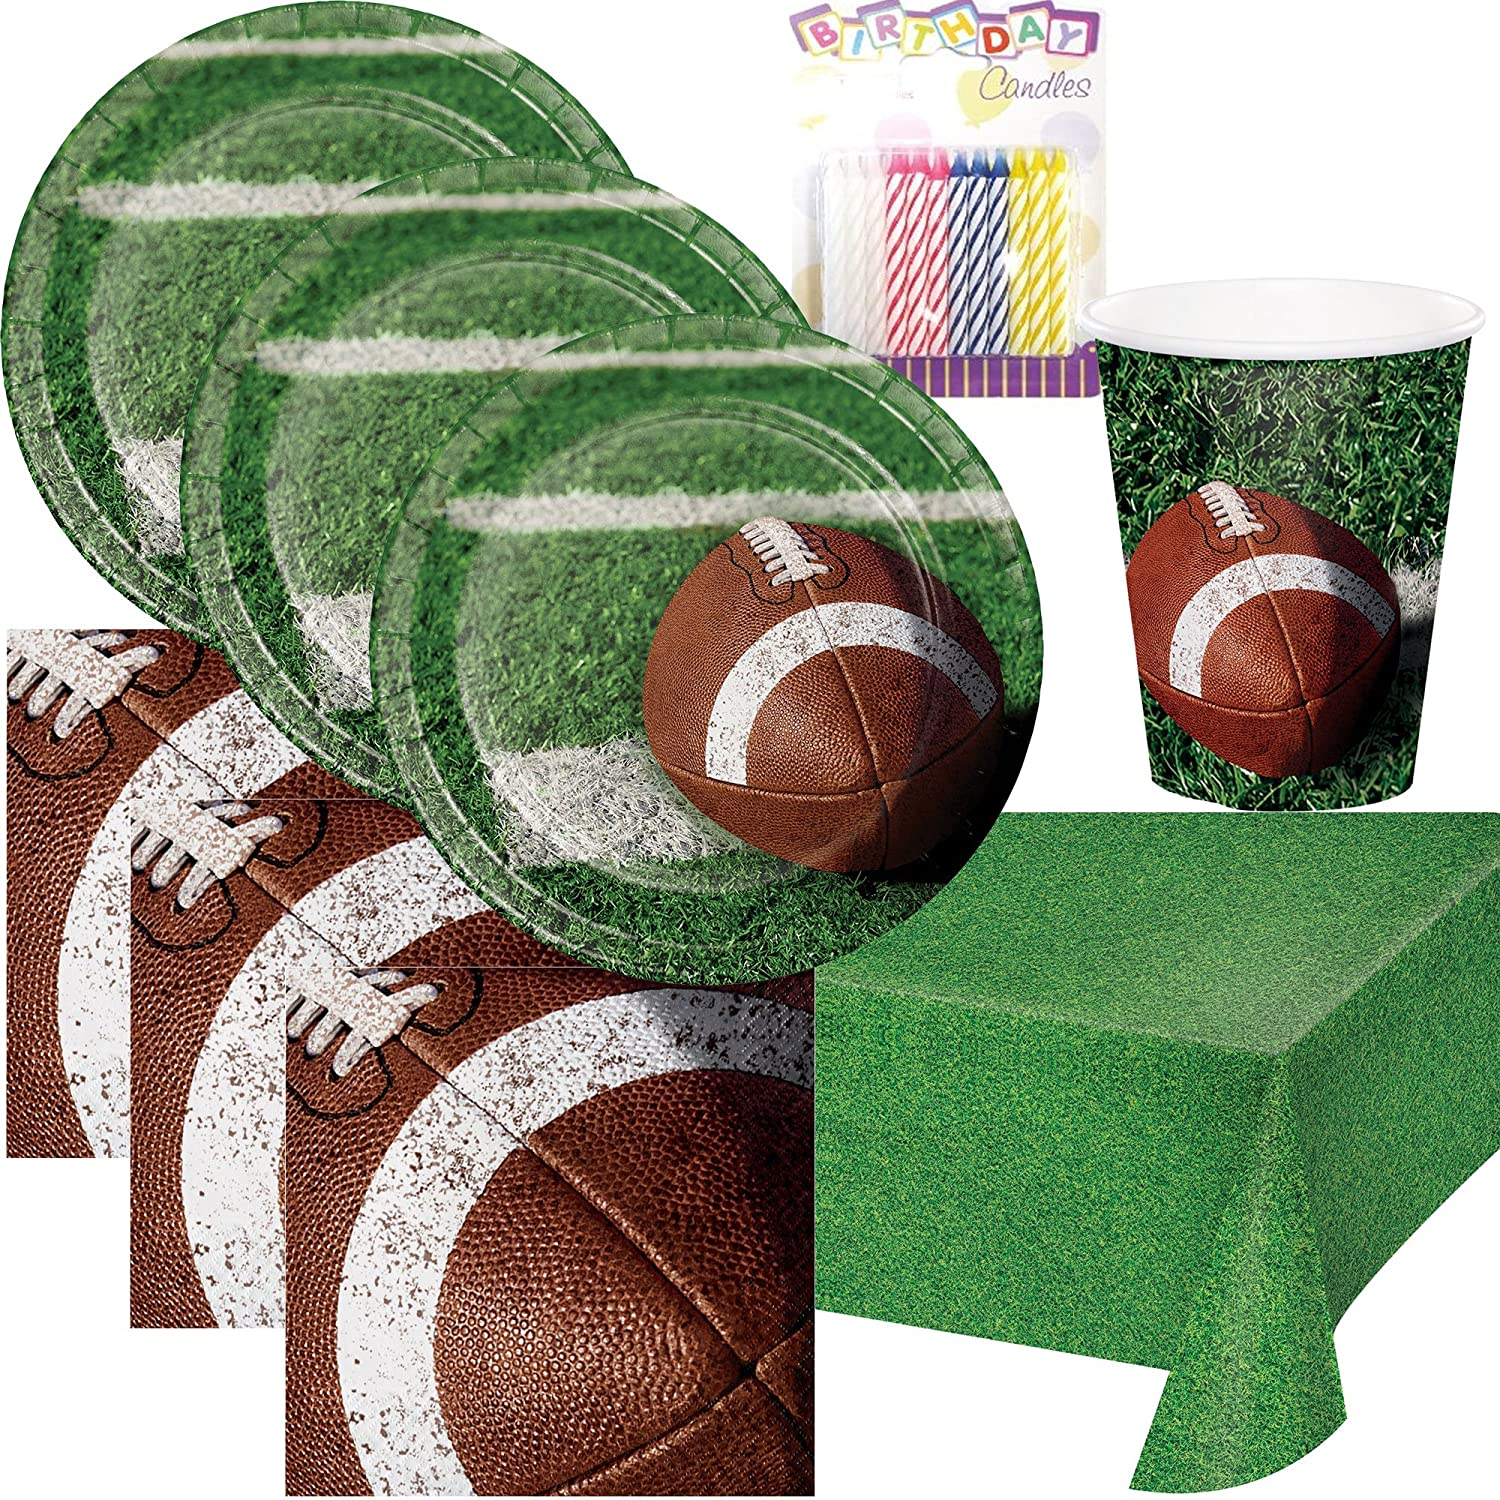 Football Tailgate Rush Party Supplies Pack Plates, Napkins, Cups, Table Cover, and Birthday Candles